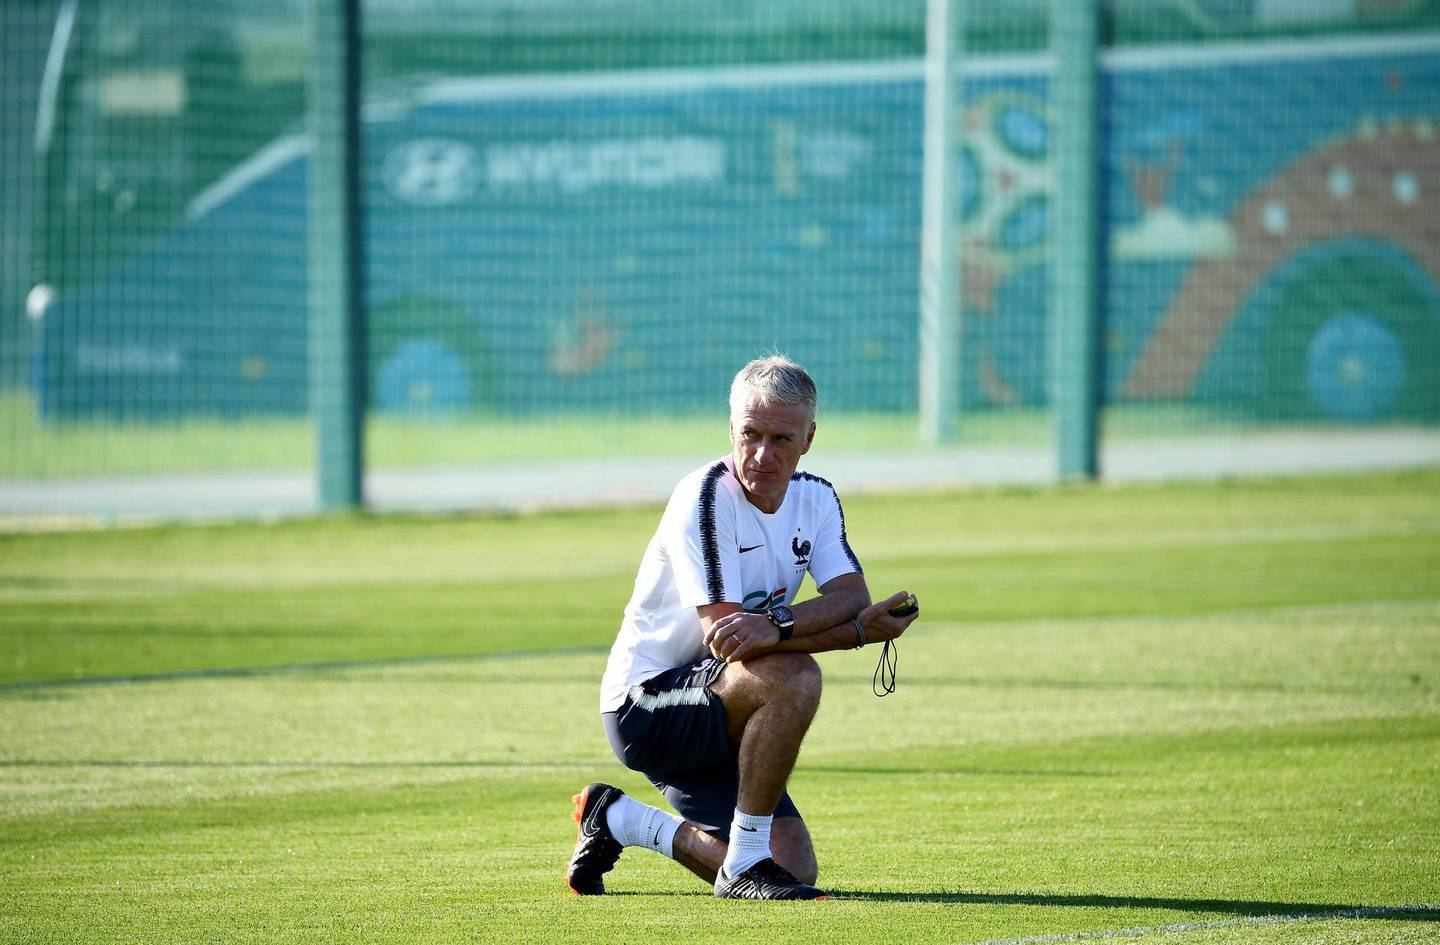 France's head coach Didier Deschamps kneels on the pitch during a training session in Istra, west of Moscow on June 27, 2018, during the Russia 2018 World Cup football tournament. / AFP / FRANCK FIFE